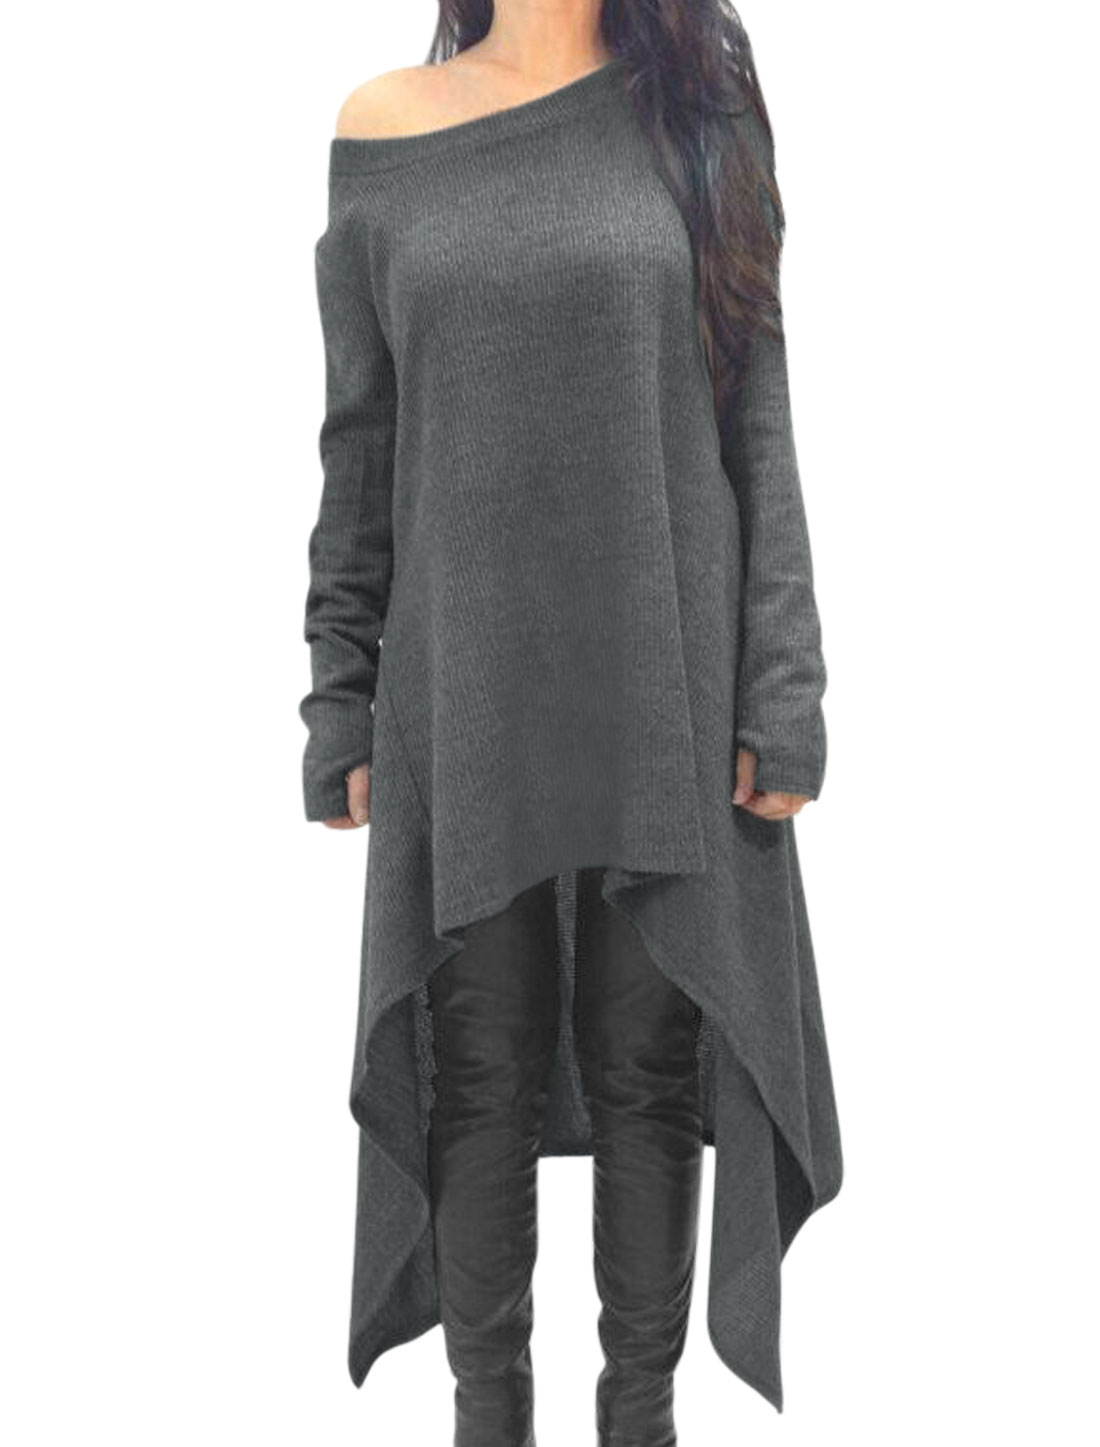 Women Hole Cuffs Boat Neck Asymmetric Hem Loose Tunic Top Gray M